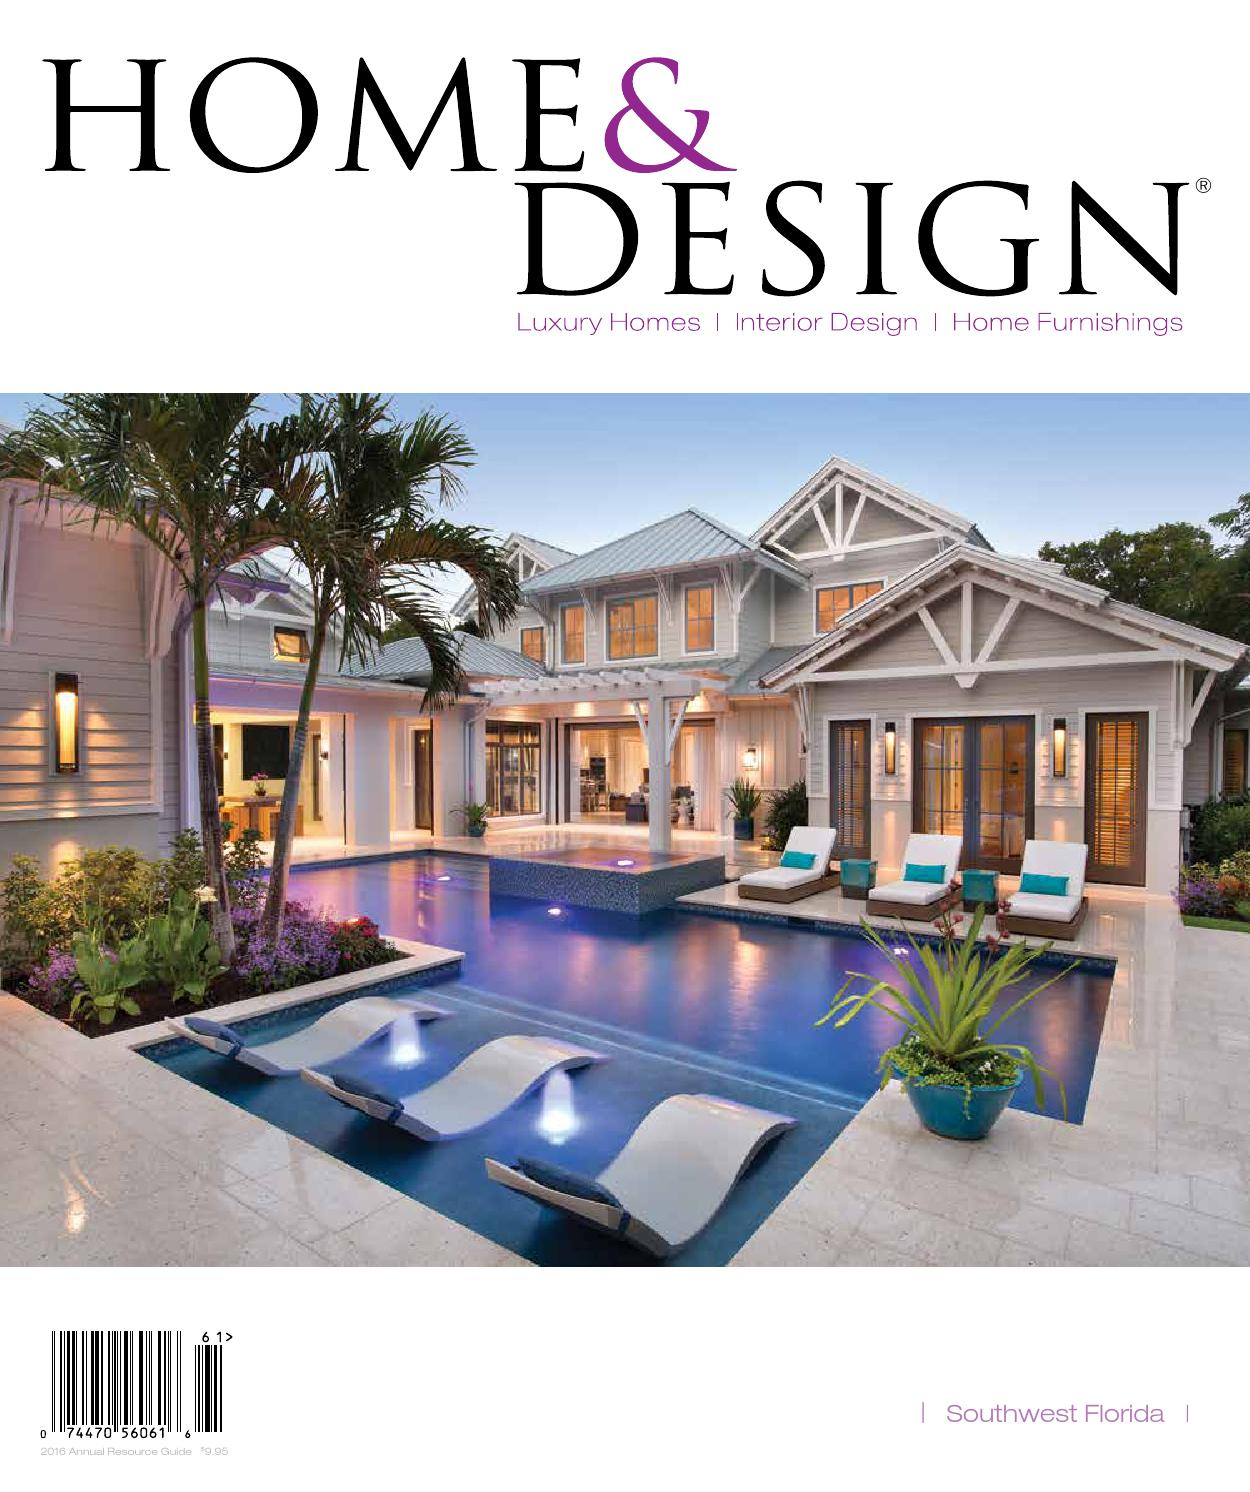 Home & Design Magazine | Annual Resource Guide 2016 | Southwest ...